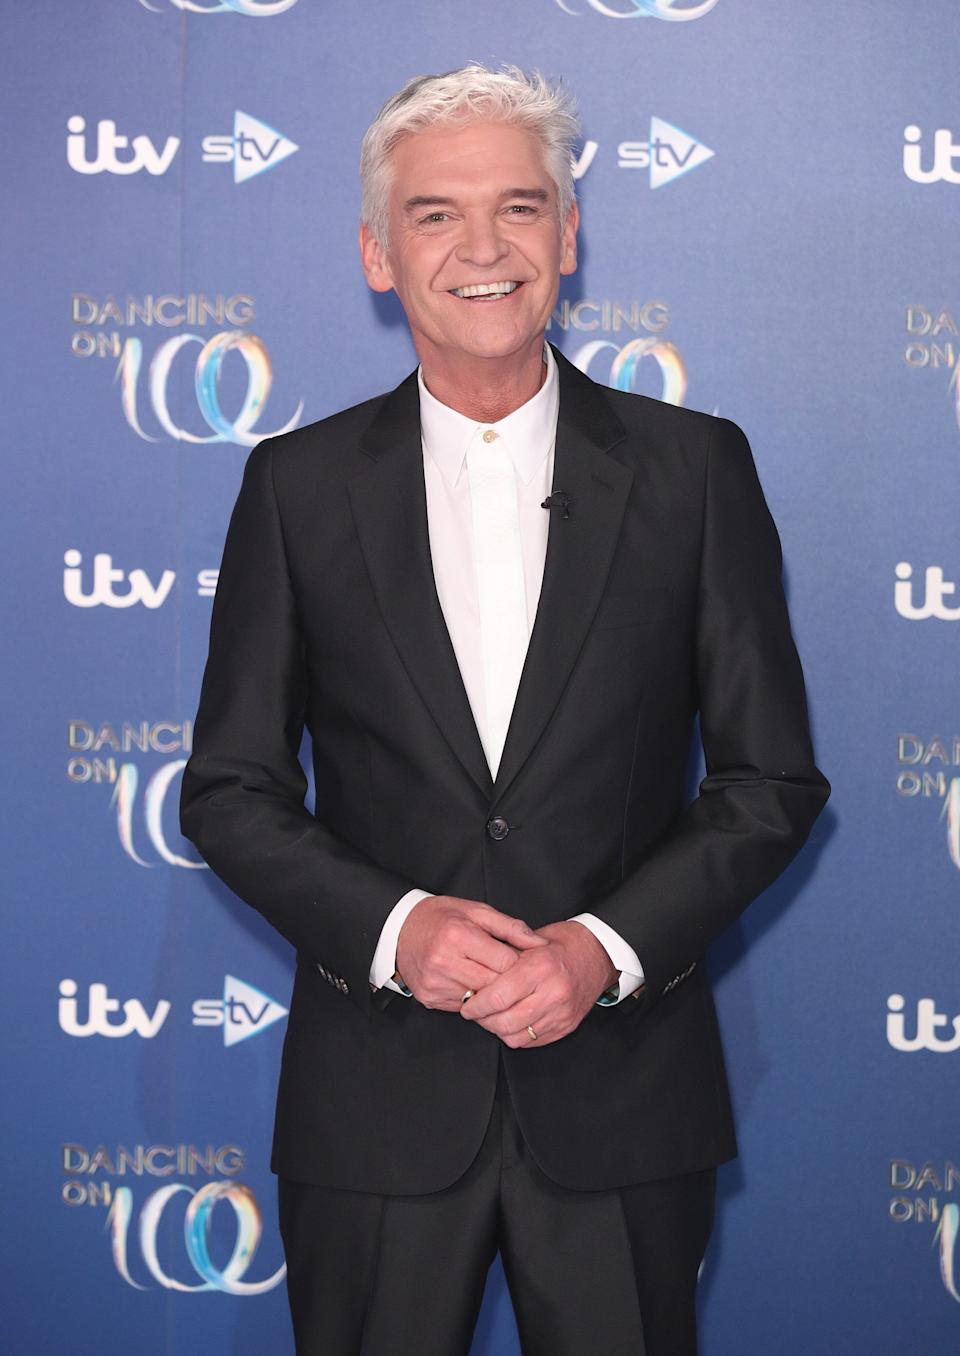 Phillip Schofield (Photo: Mike Marsland via Getty Images)